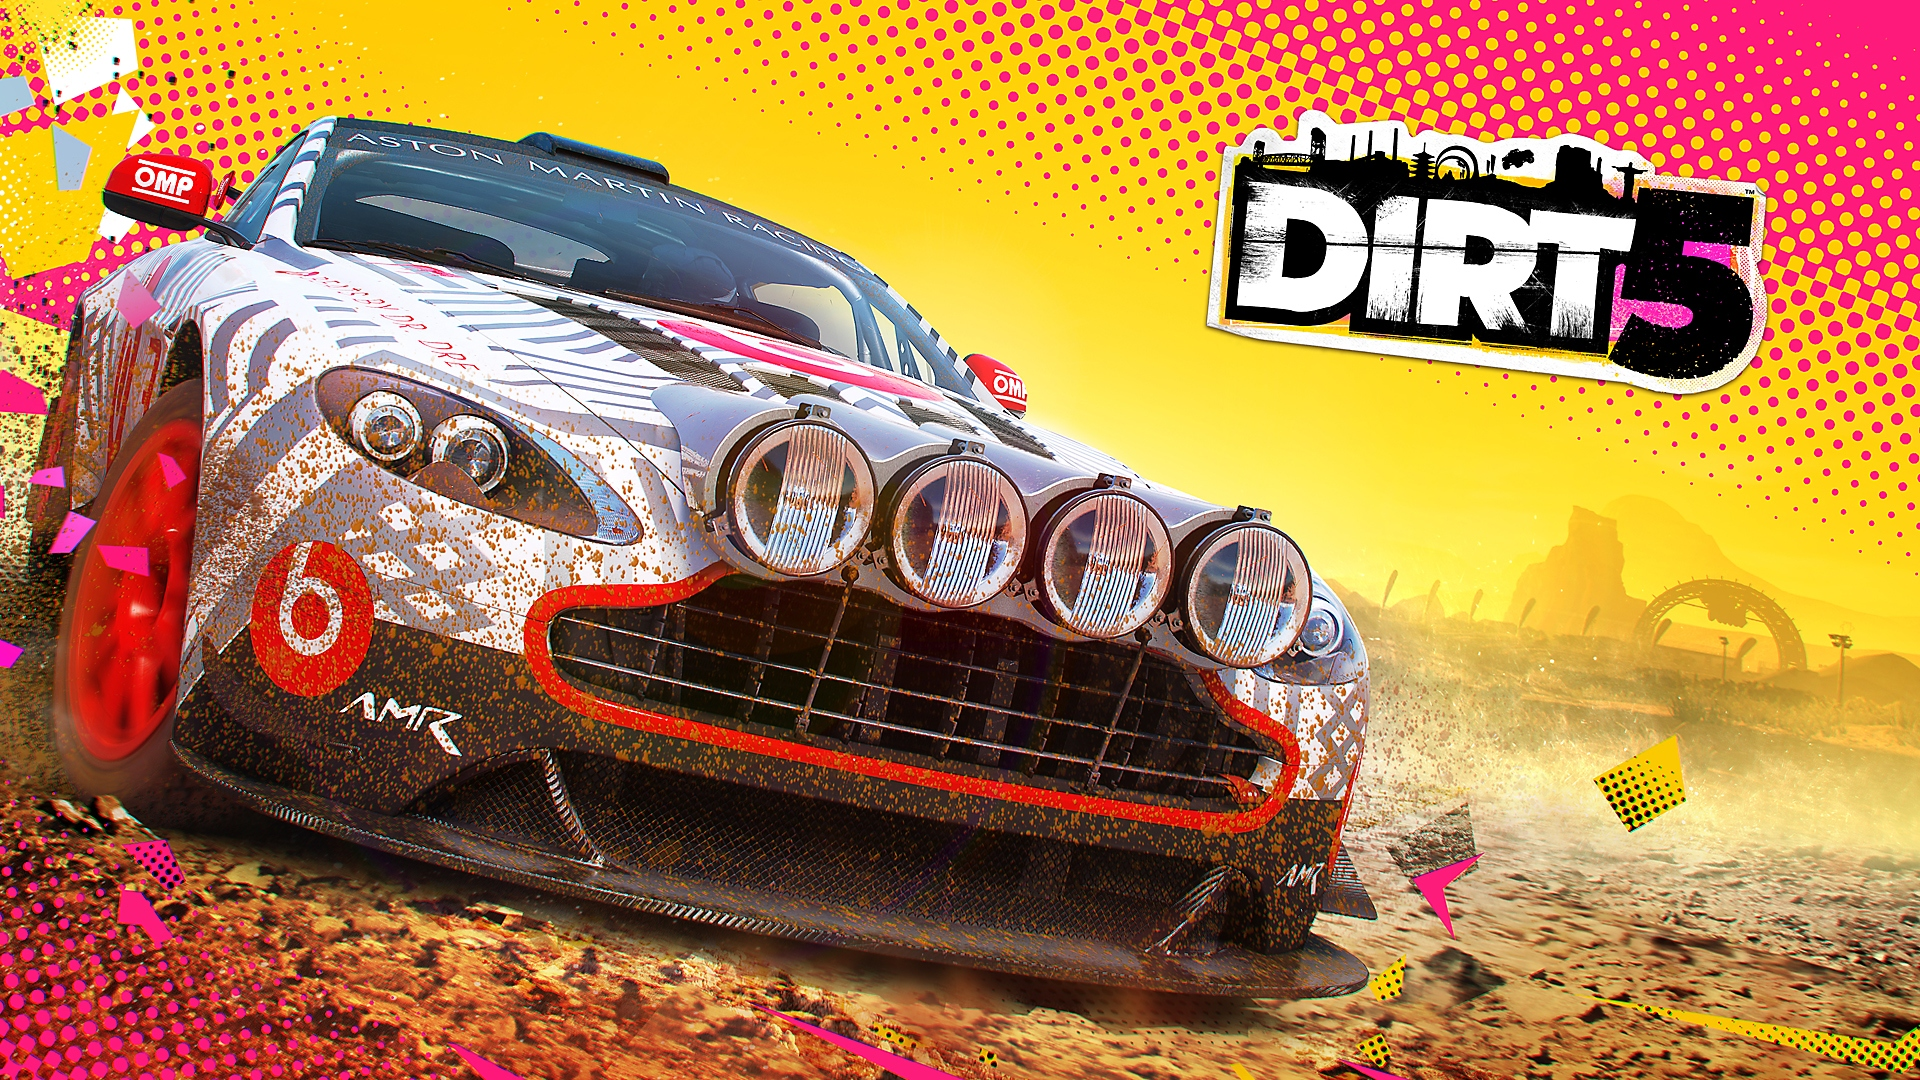 Dirt 5 key art